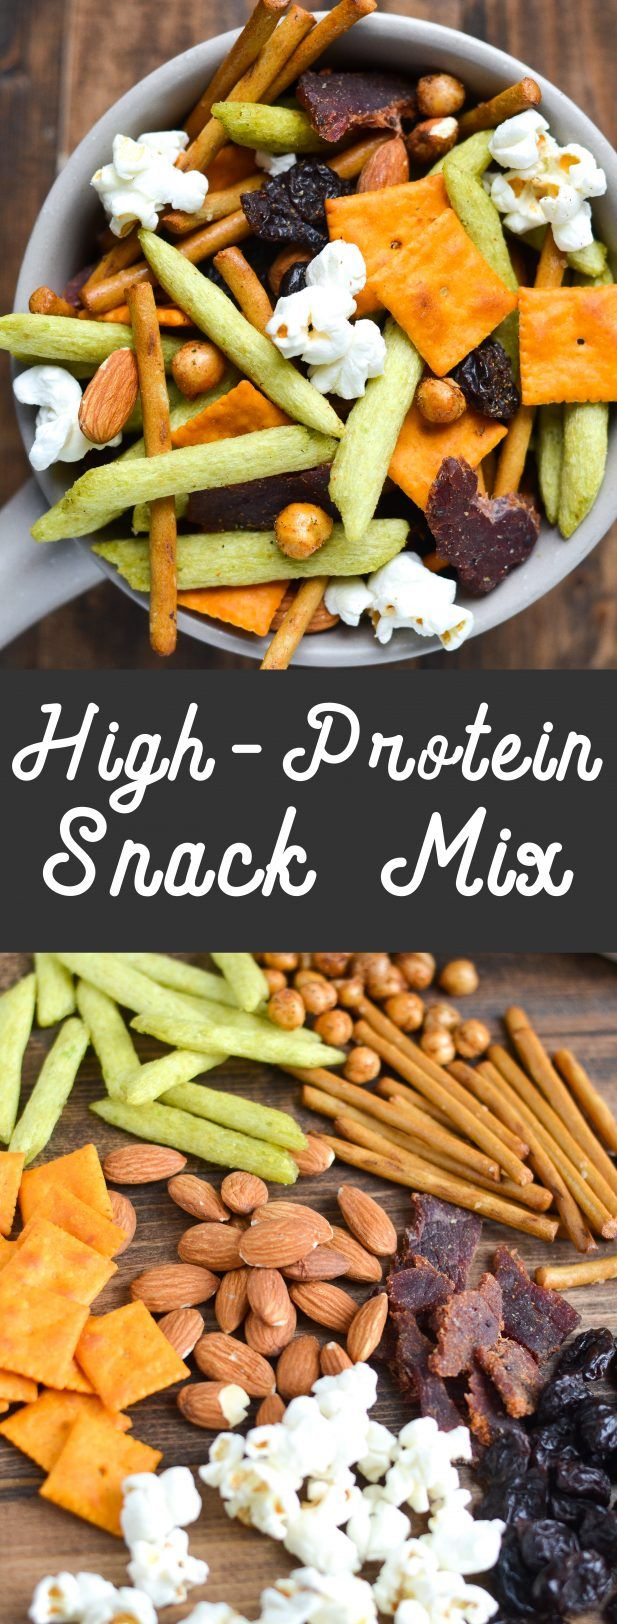 High-Protein Snack Mix via @mymoderncookery